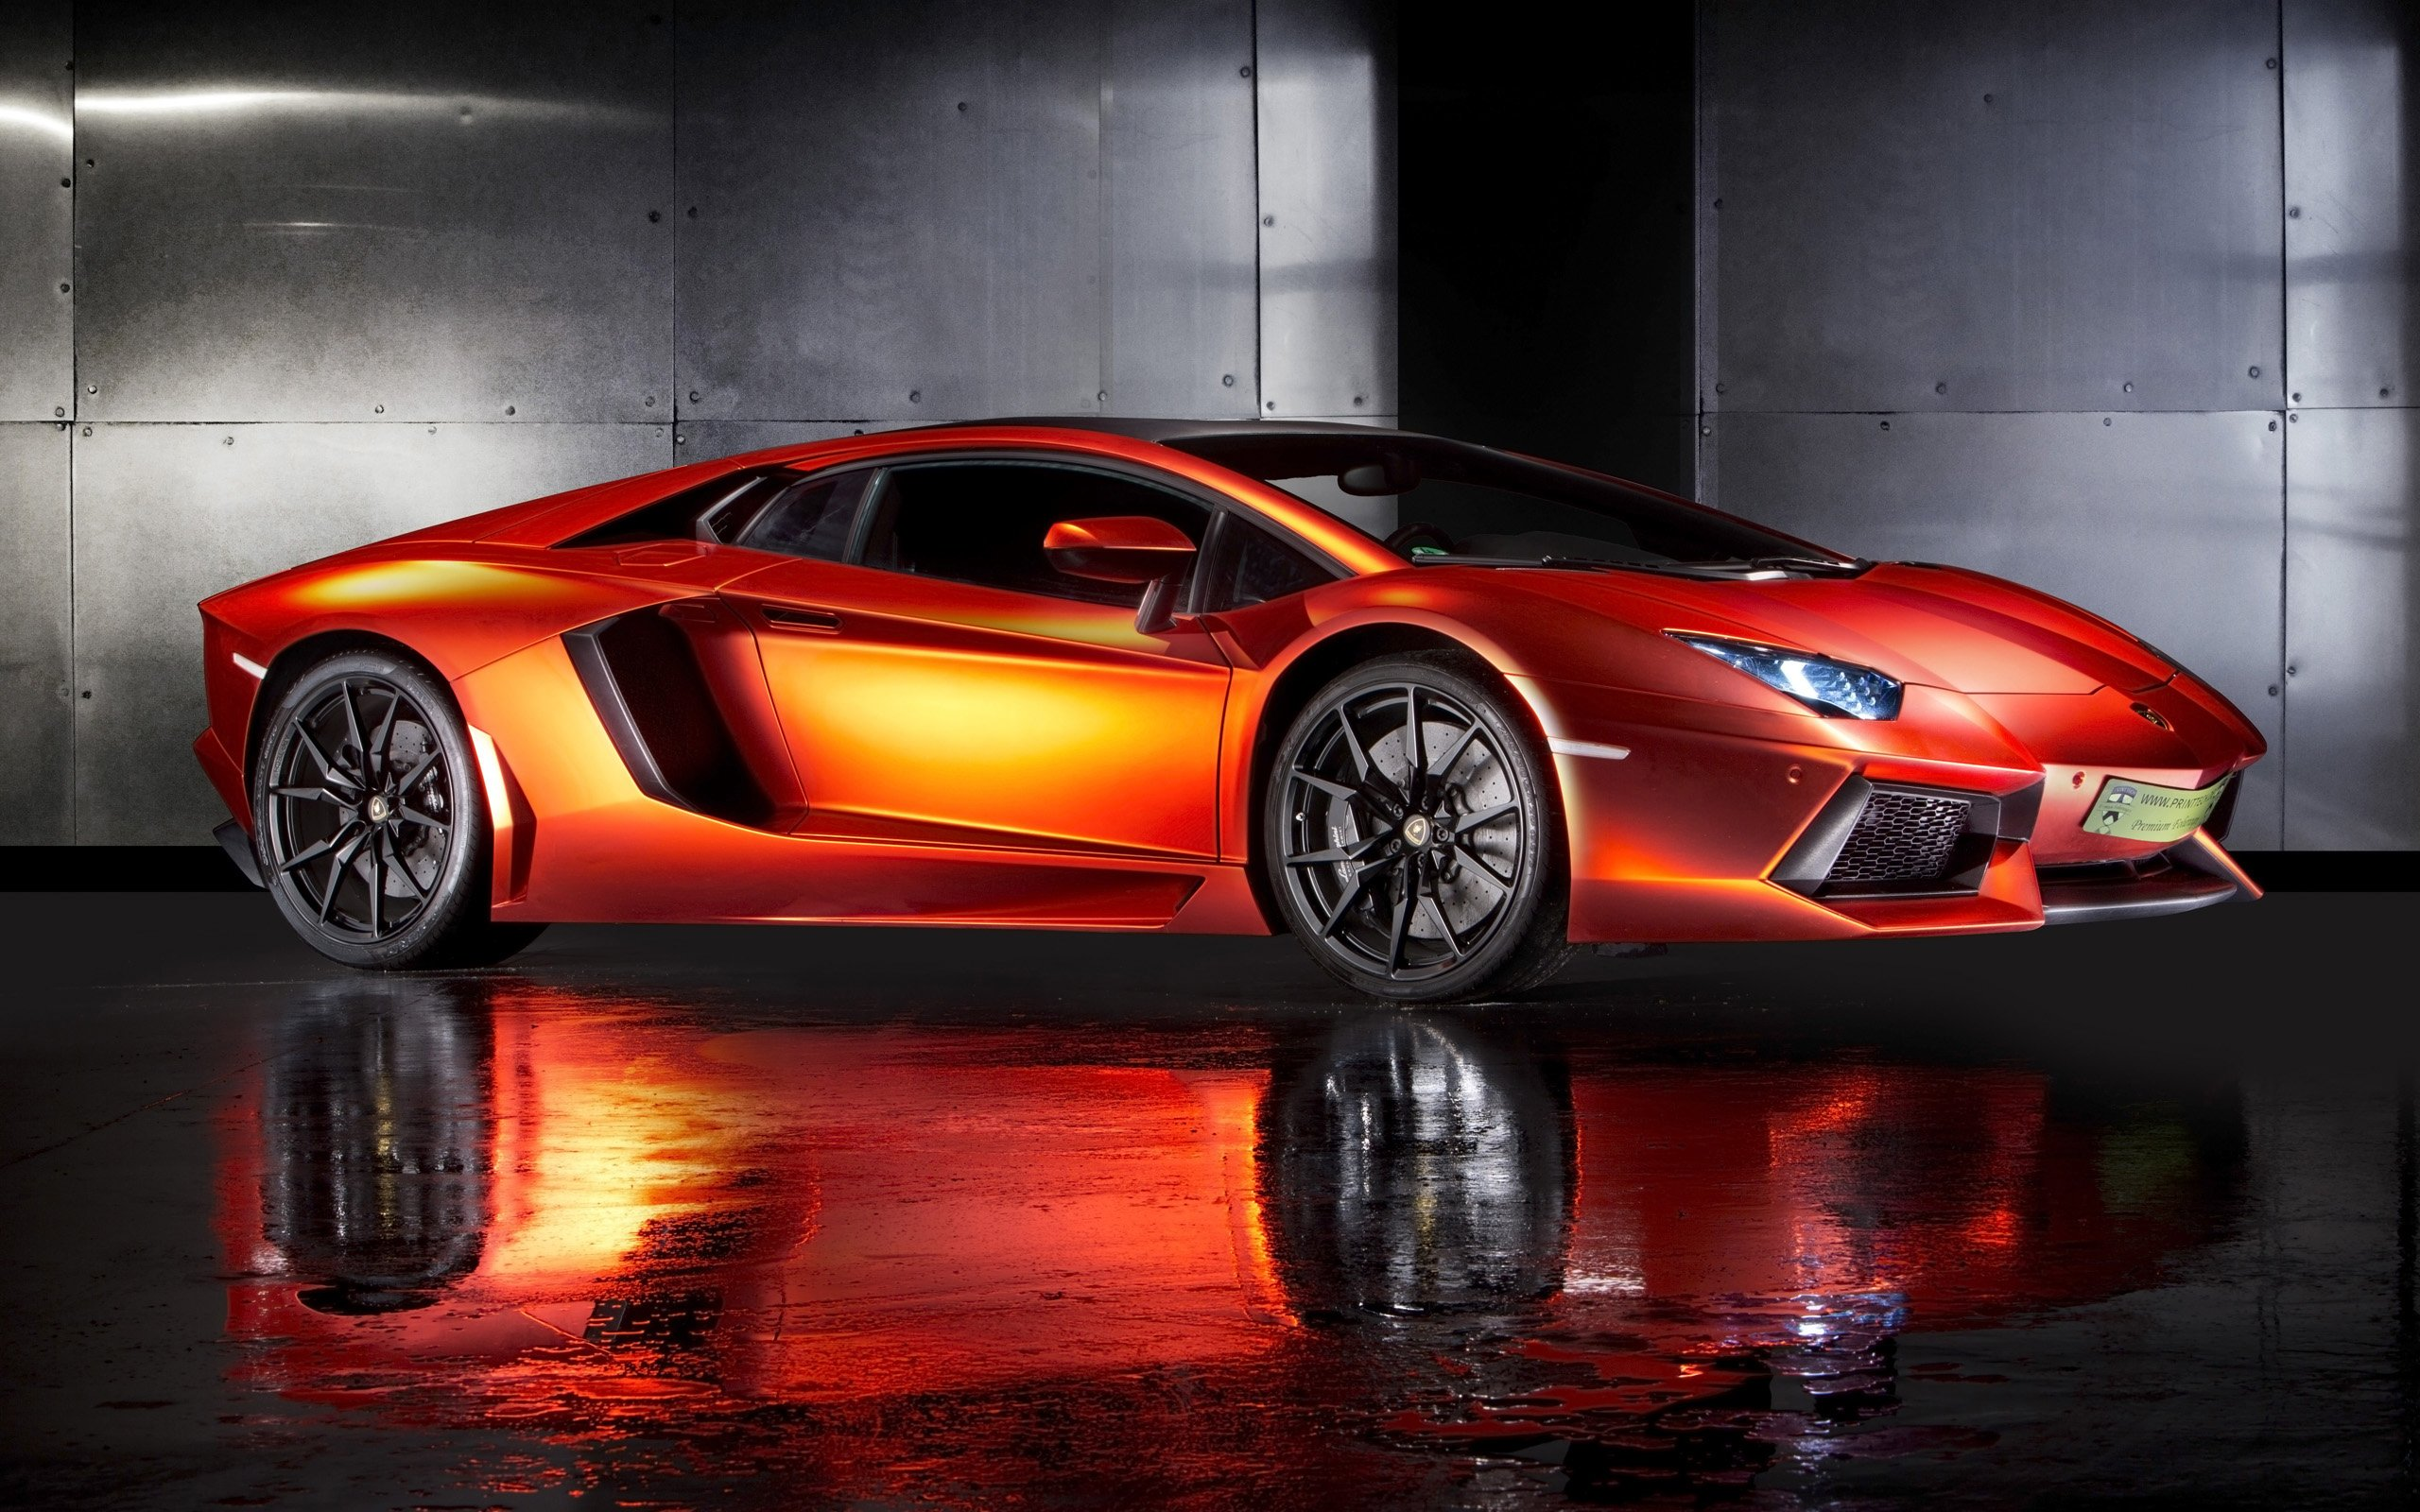 ... Lamborghini Aventador supercar wallpaper. Available in 2560 x 1600